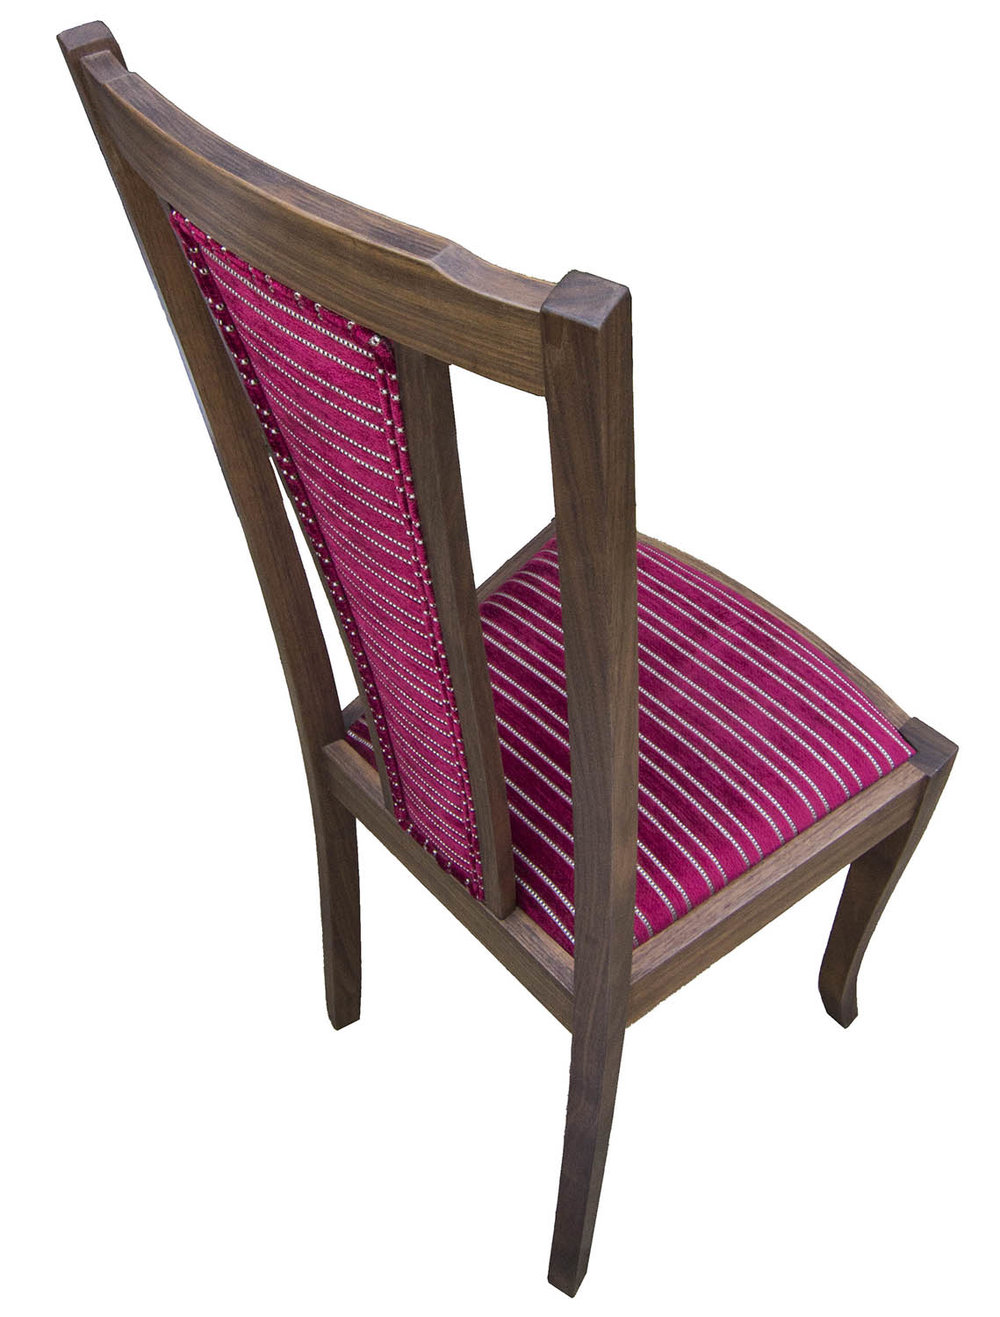 Upholstered dinnig chair in walnut